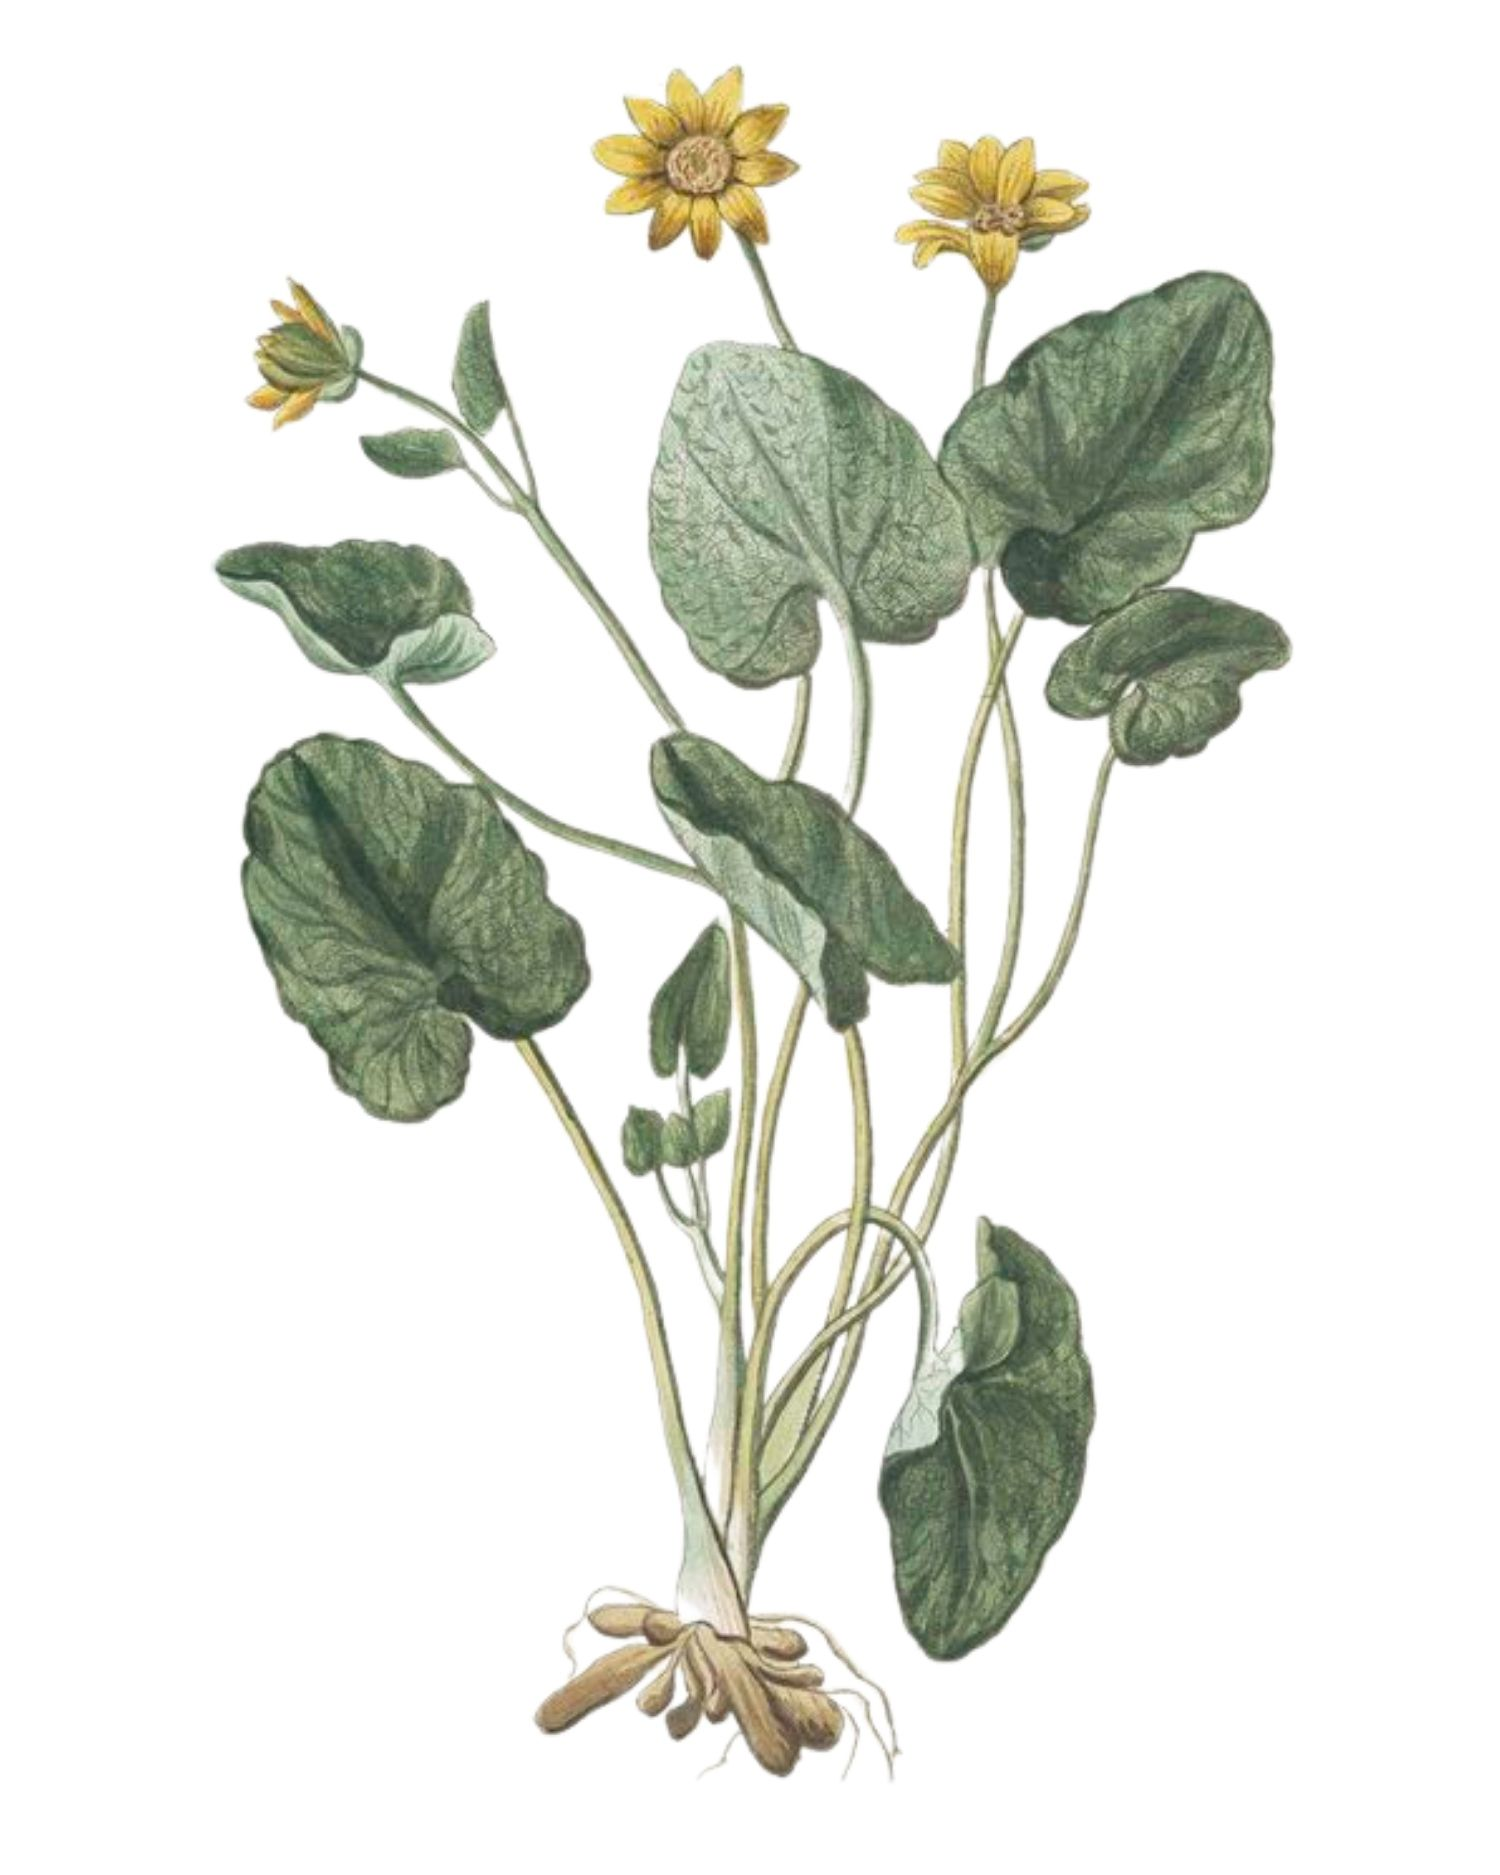 Lesser Celandine - A Foraging Guide to Its Food, Medicine and Other Uses